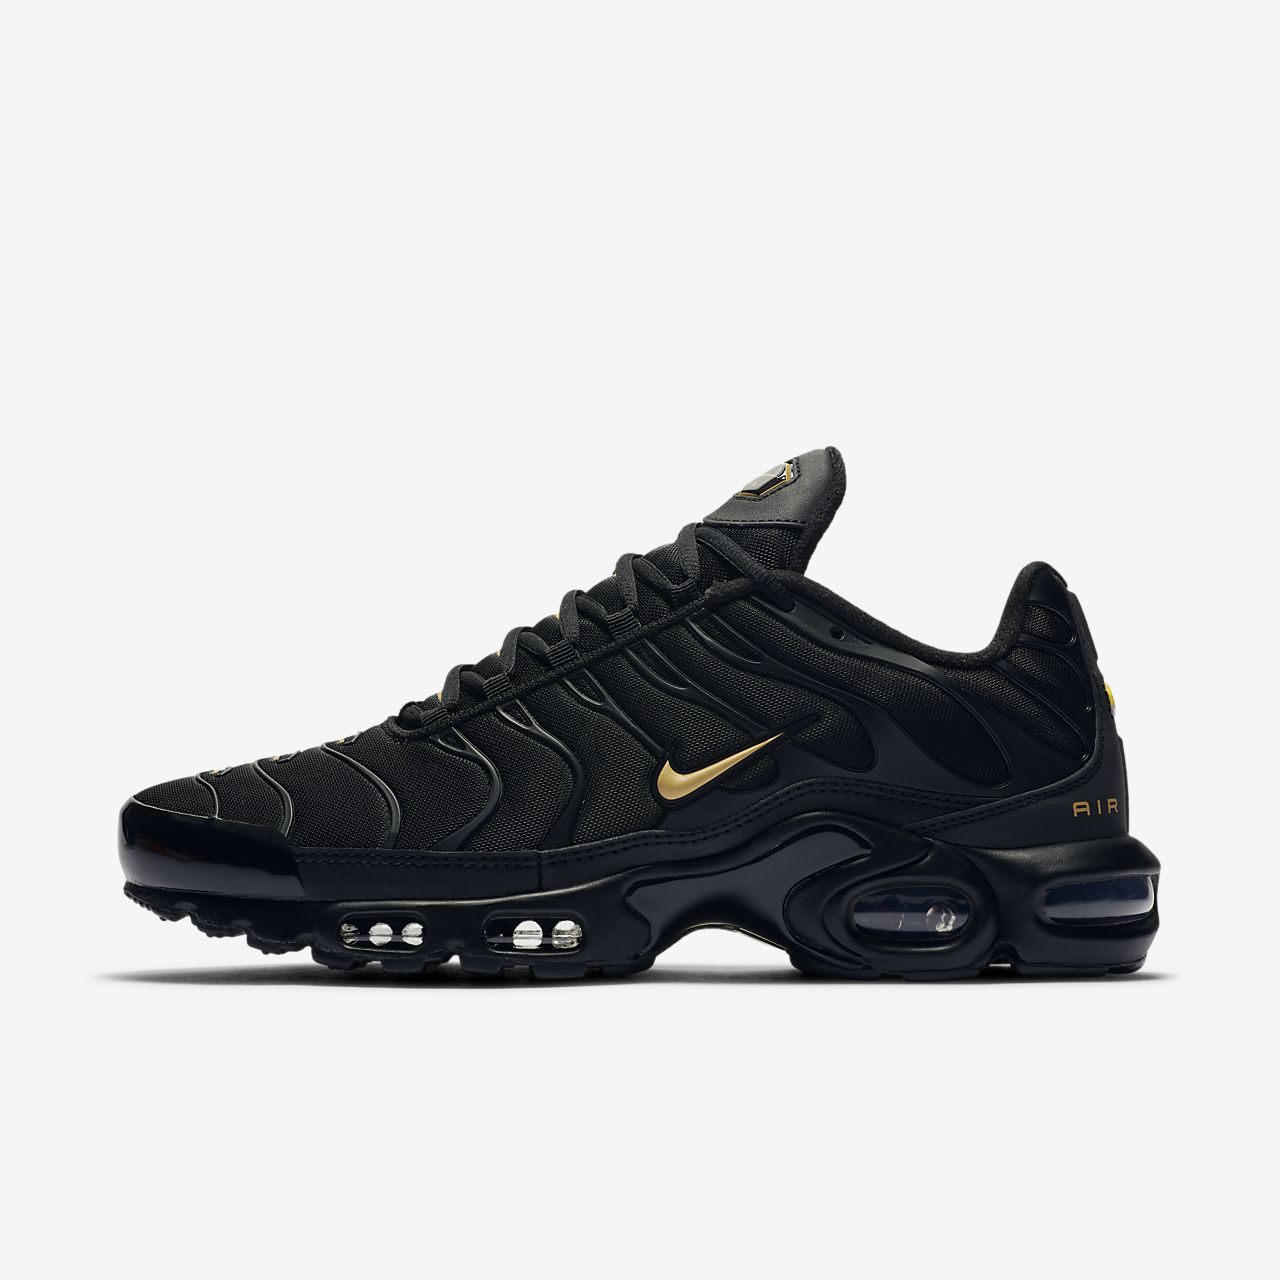 Sportschoenen Nike Air Max Plus TN Tuned Mens Shoes in Black